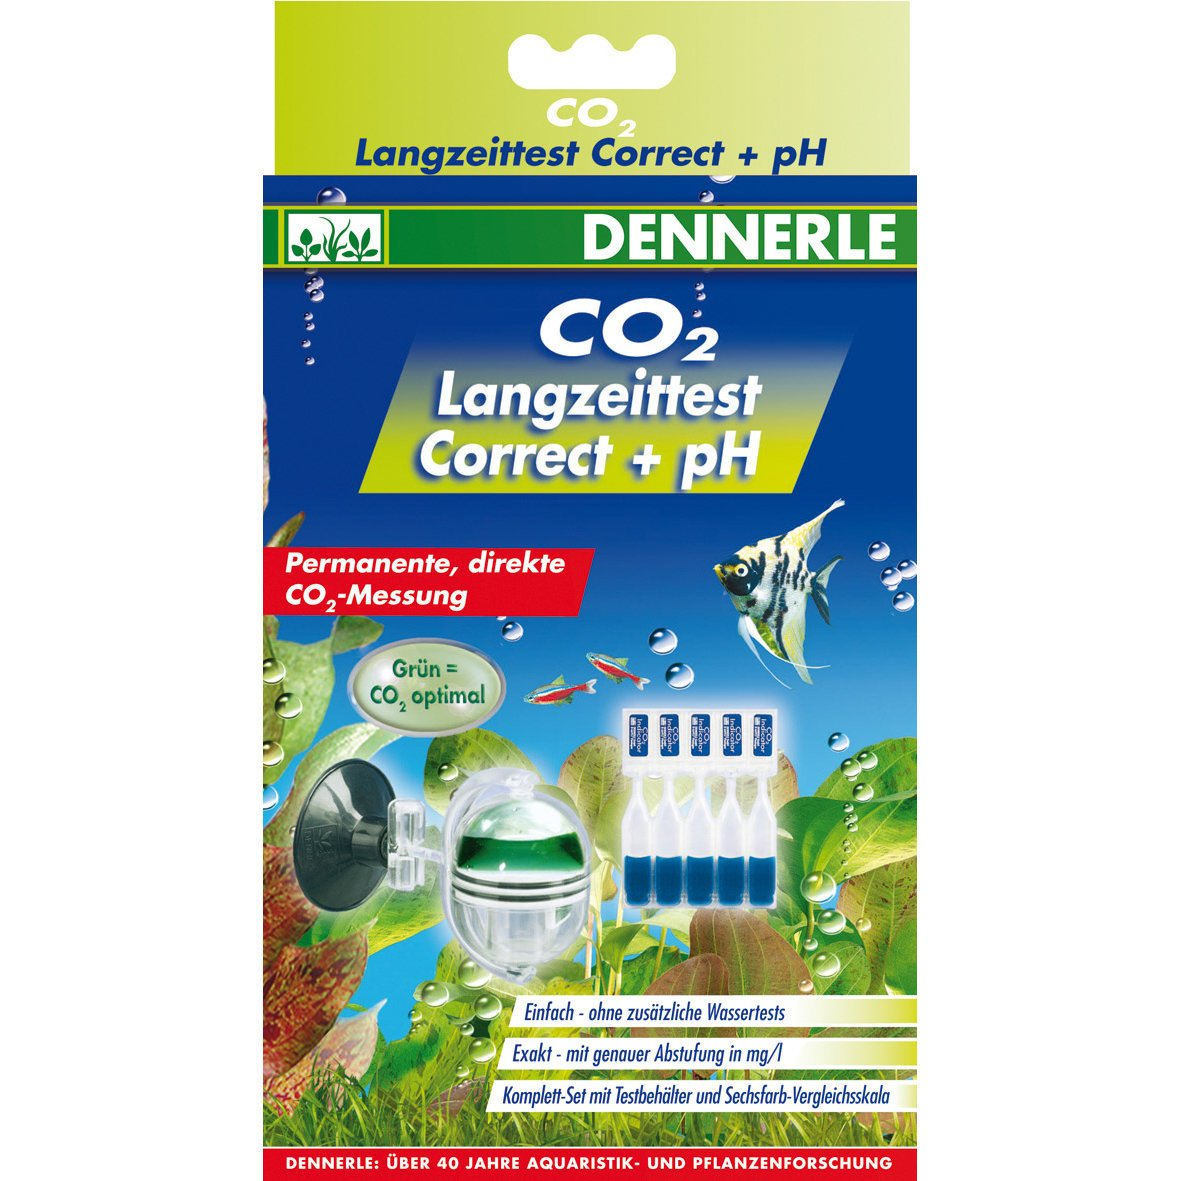 Dennerle CO2 Langzeittest Correct +pH